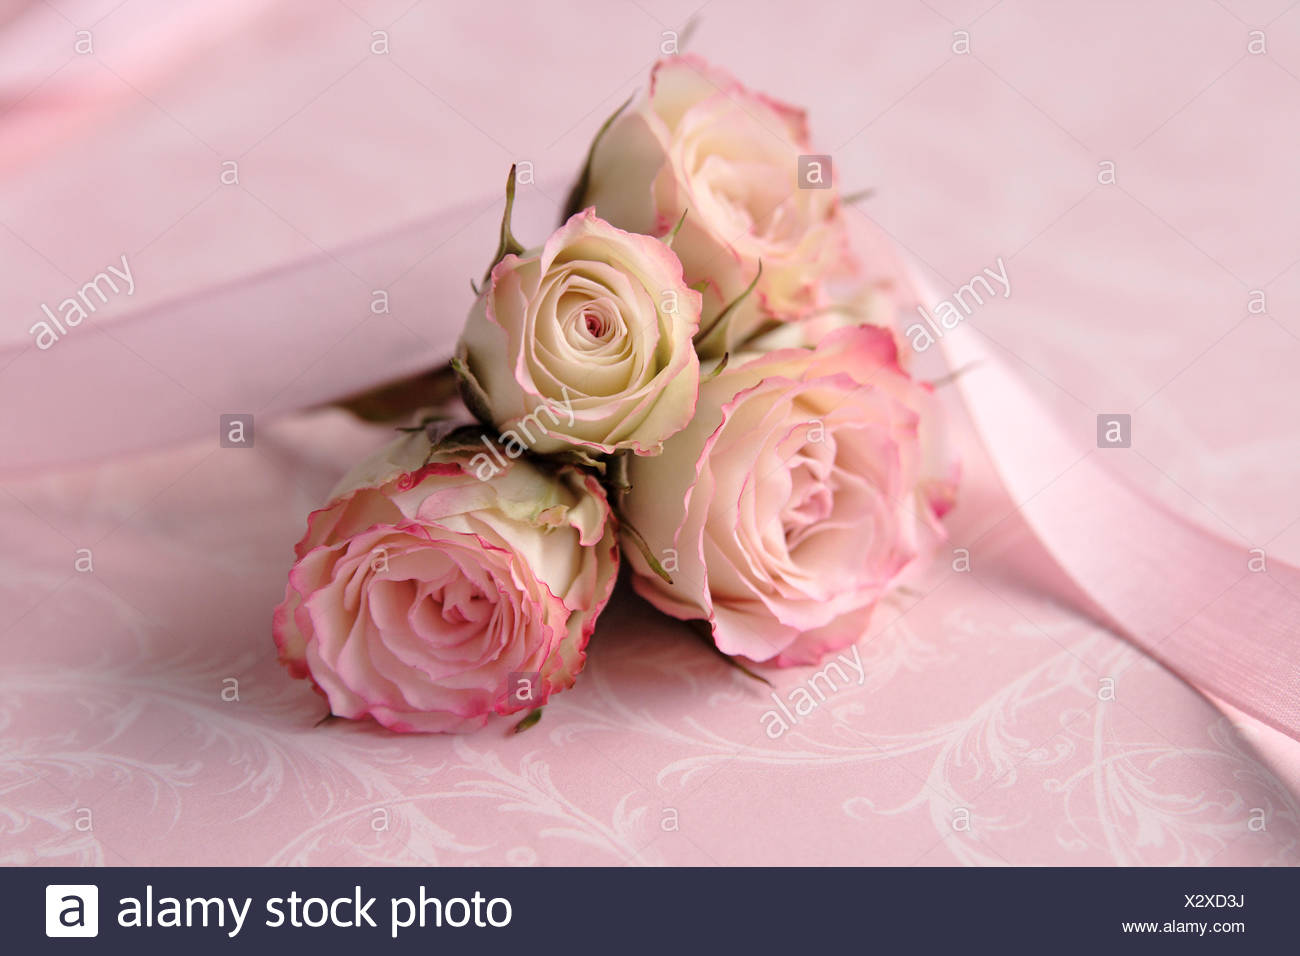 Pastel Wedding Flowers Stock Photos & Pastel Wedding Flowers Stock ...